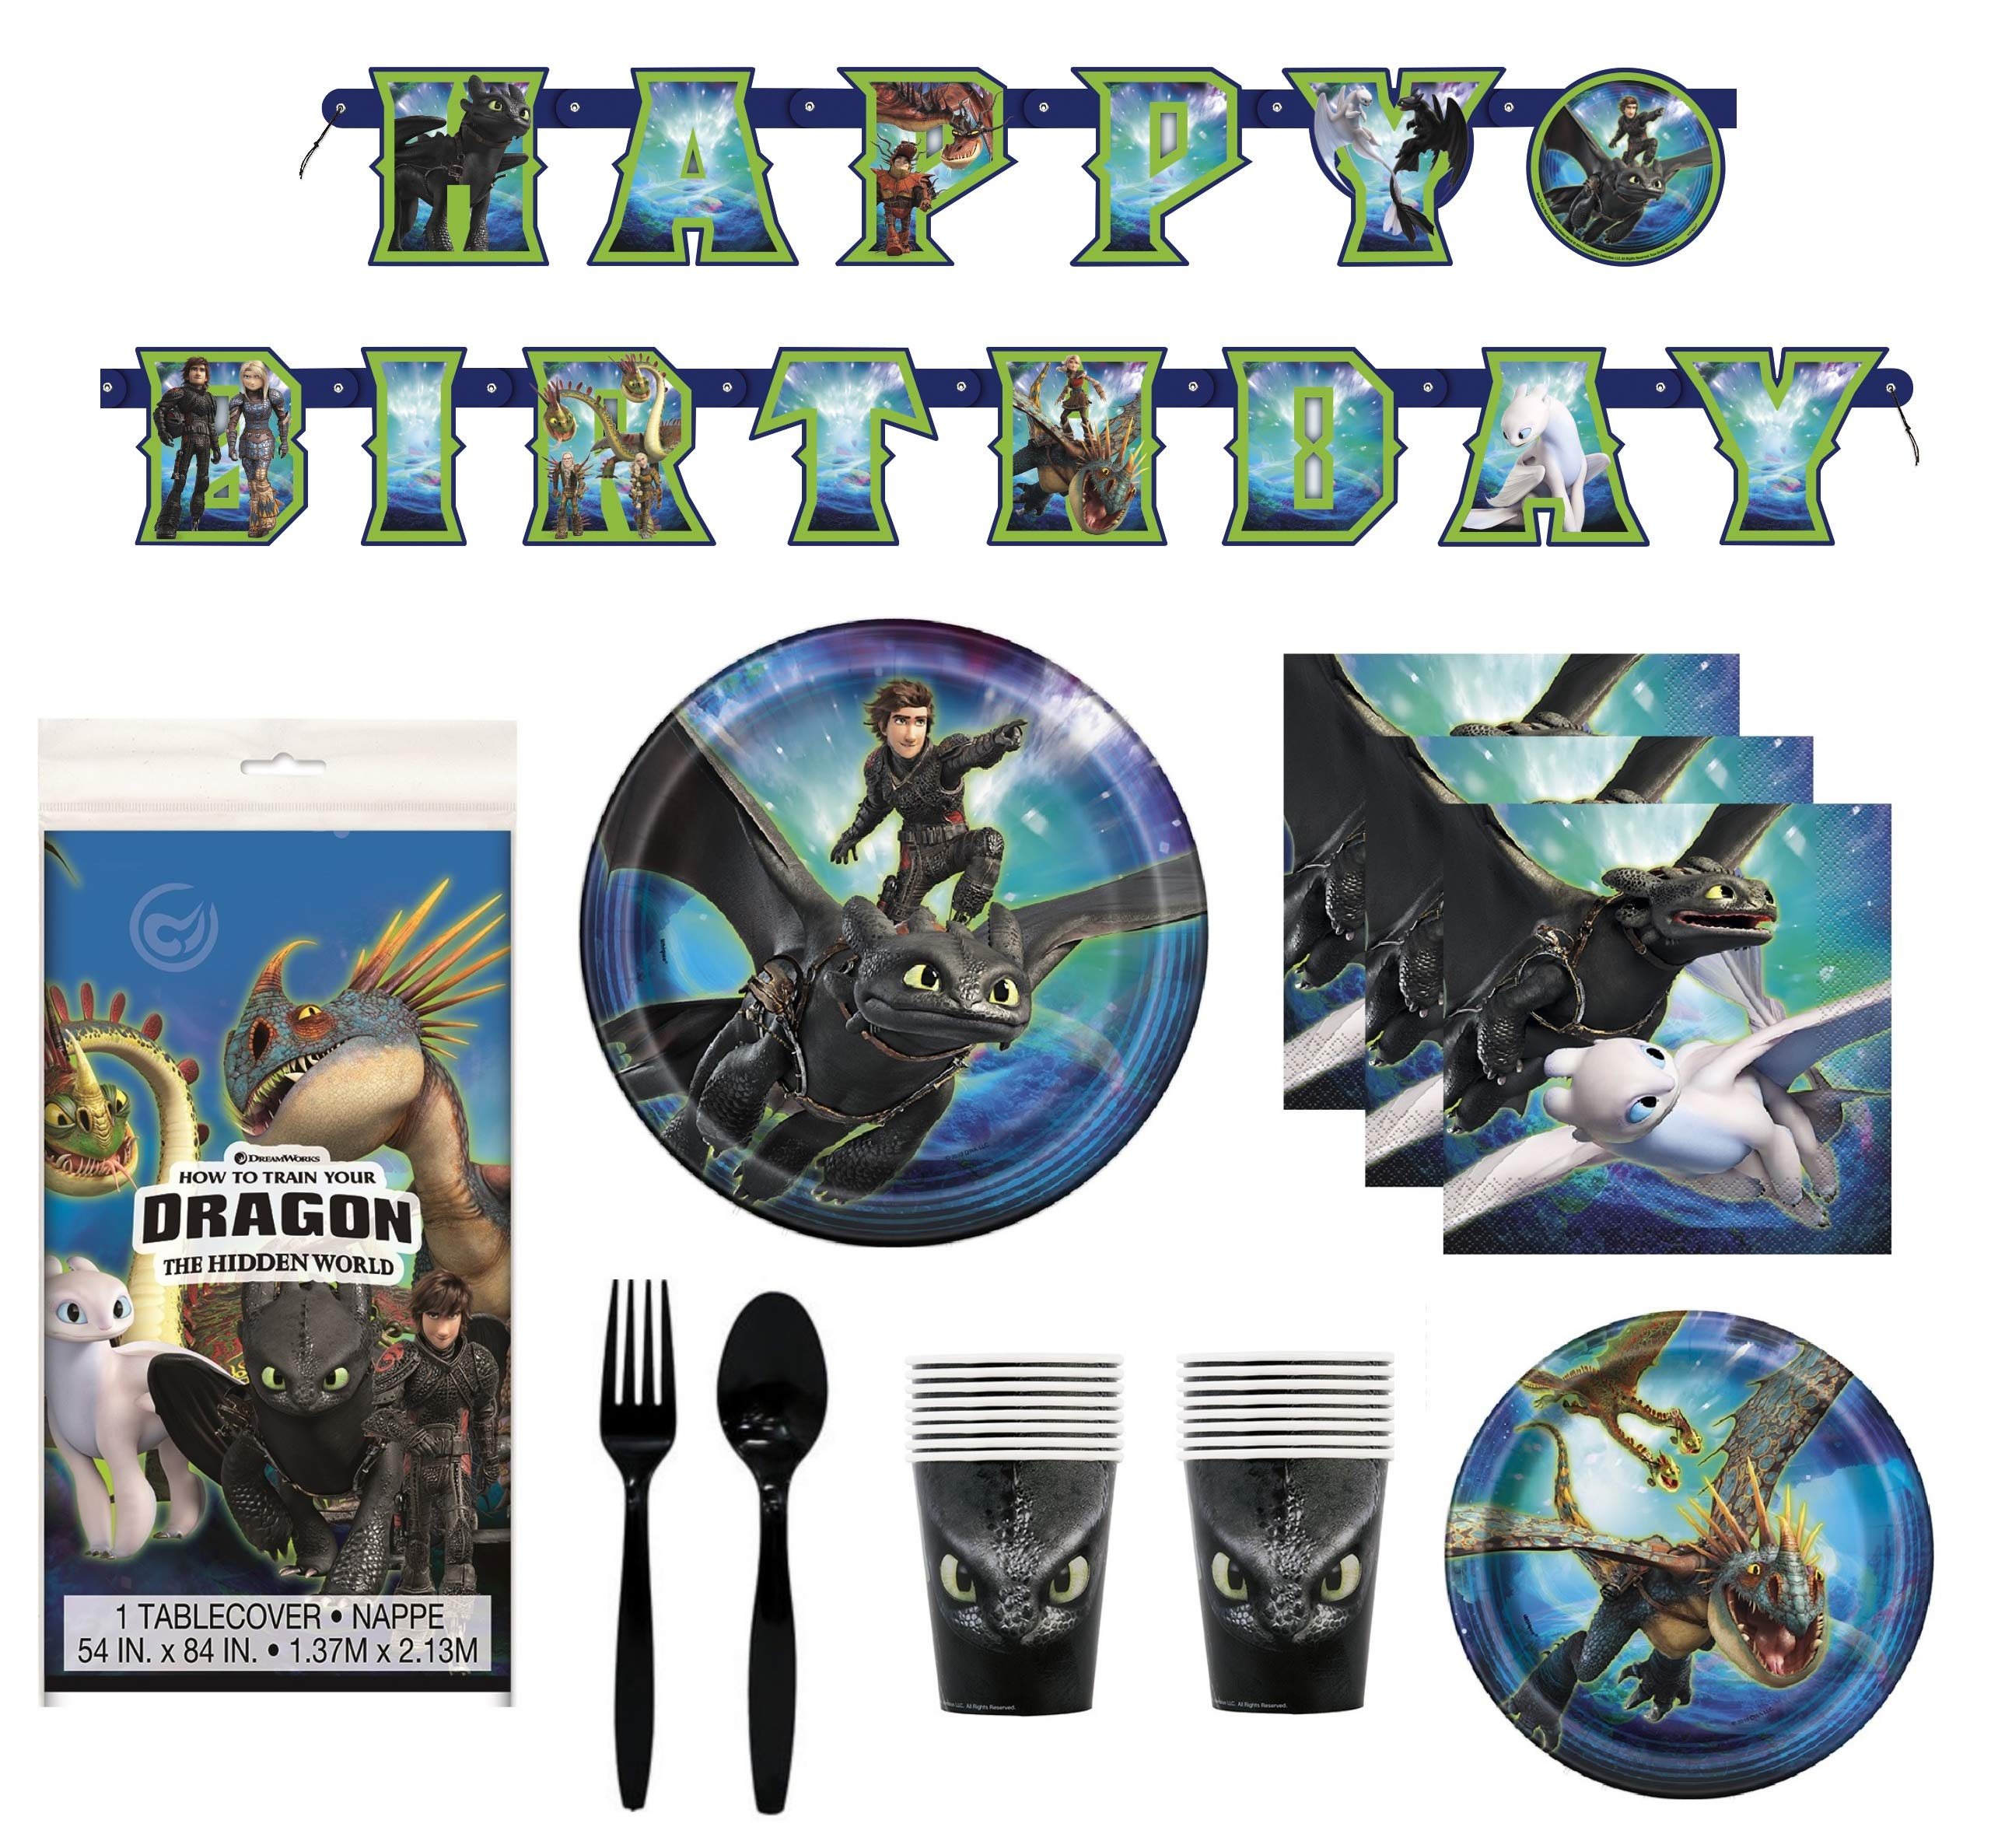 How To Train Your Dragon 3 Birthday Decorations And Tableware Plates Napkins Cups Table Cover Banner Premium Plastic Cutlery Serves 16 by FAKKOS Design